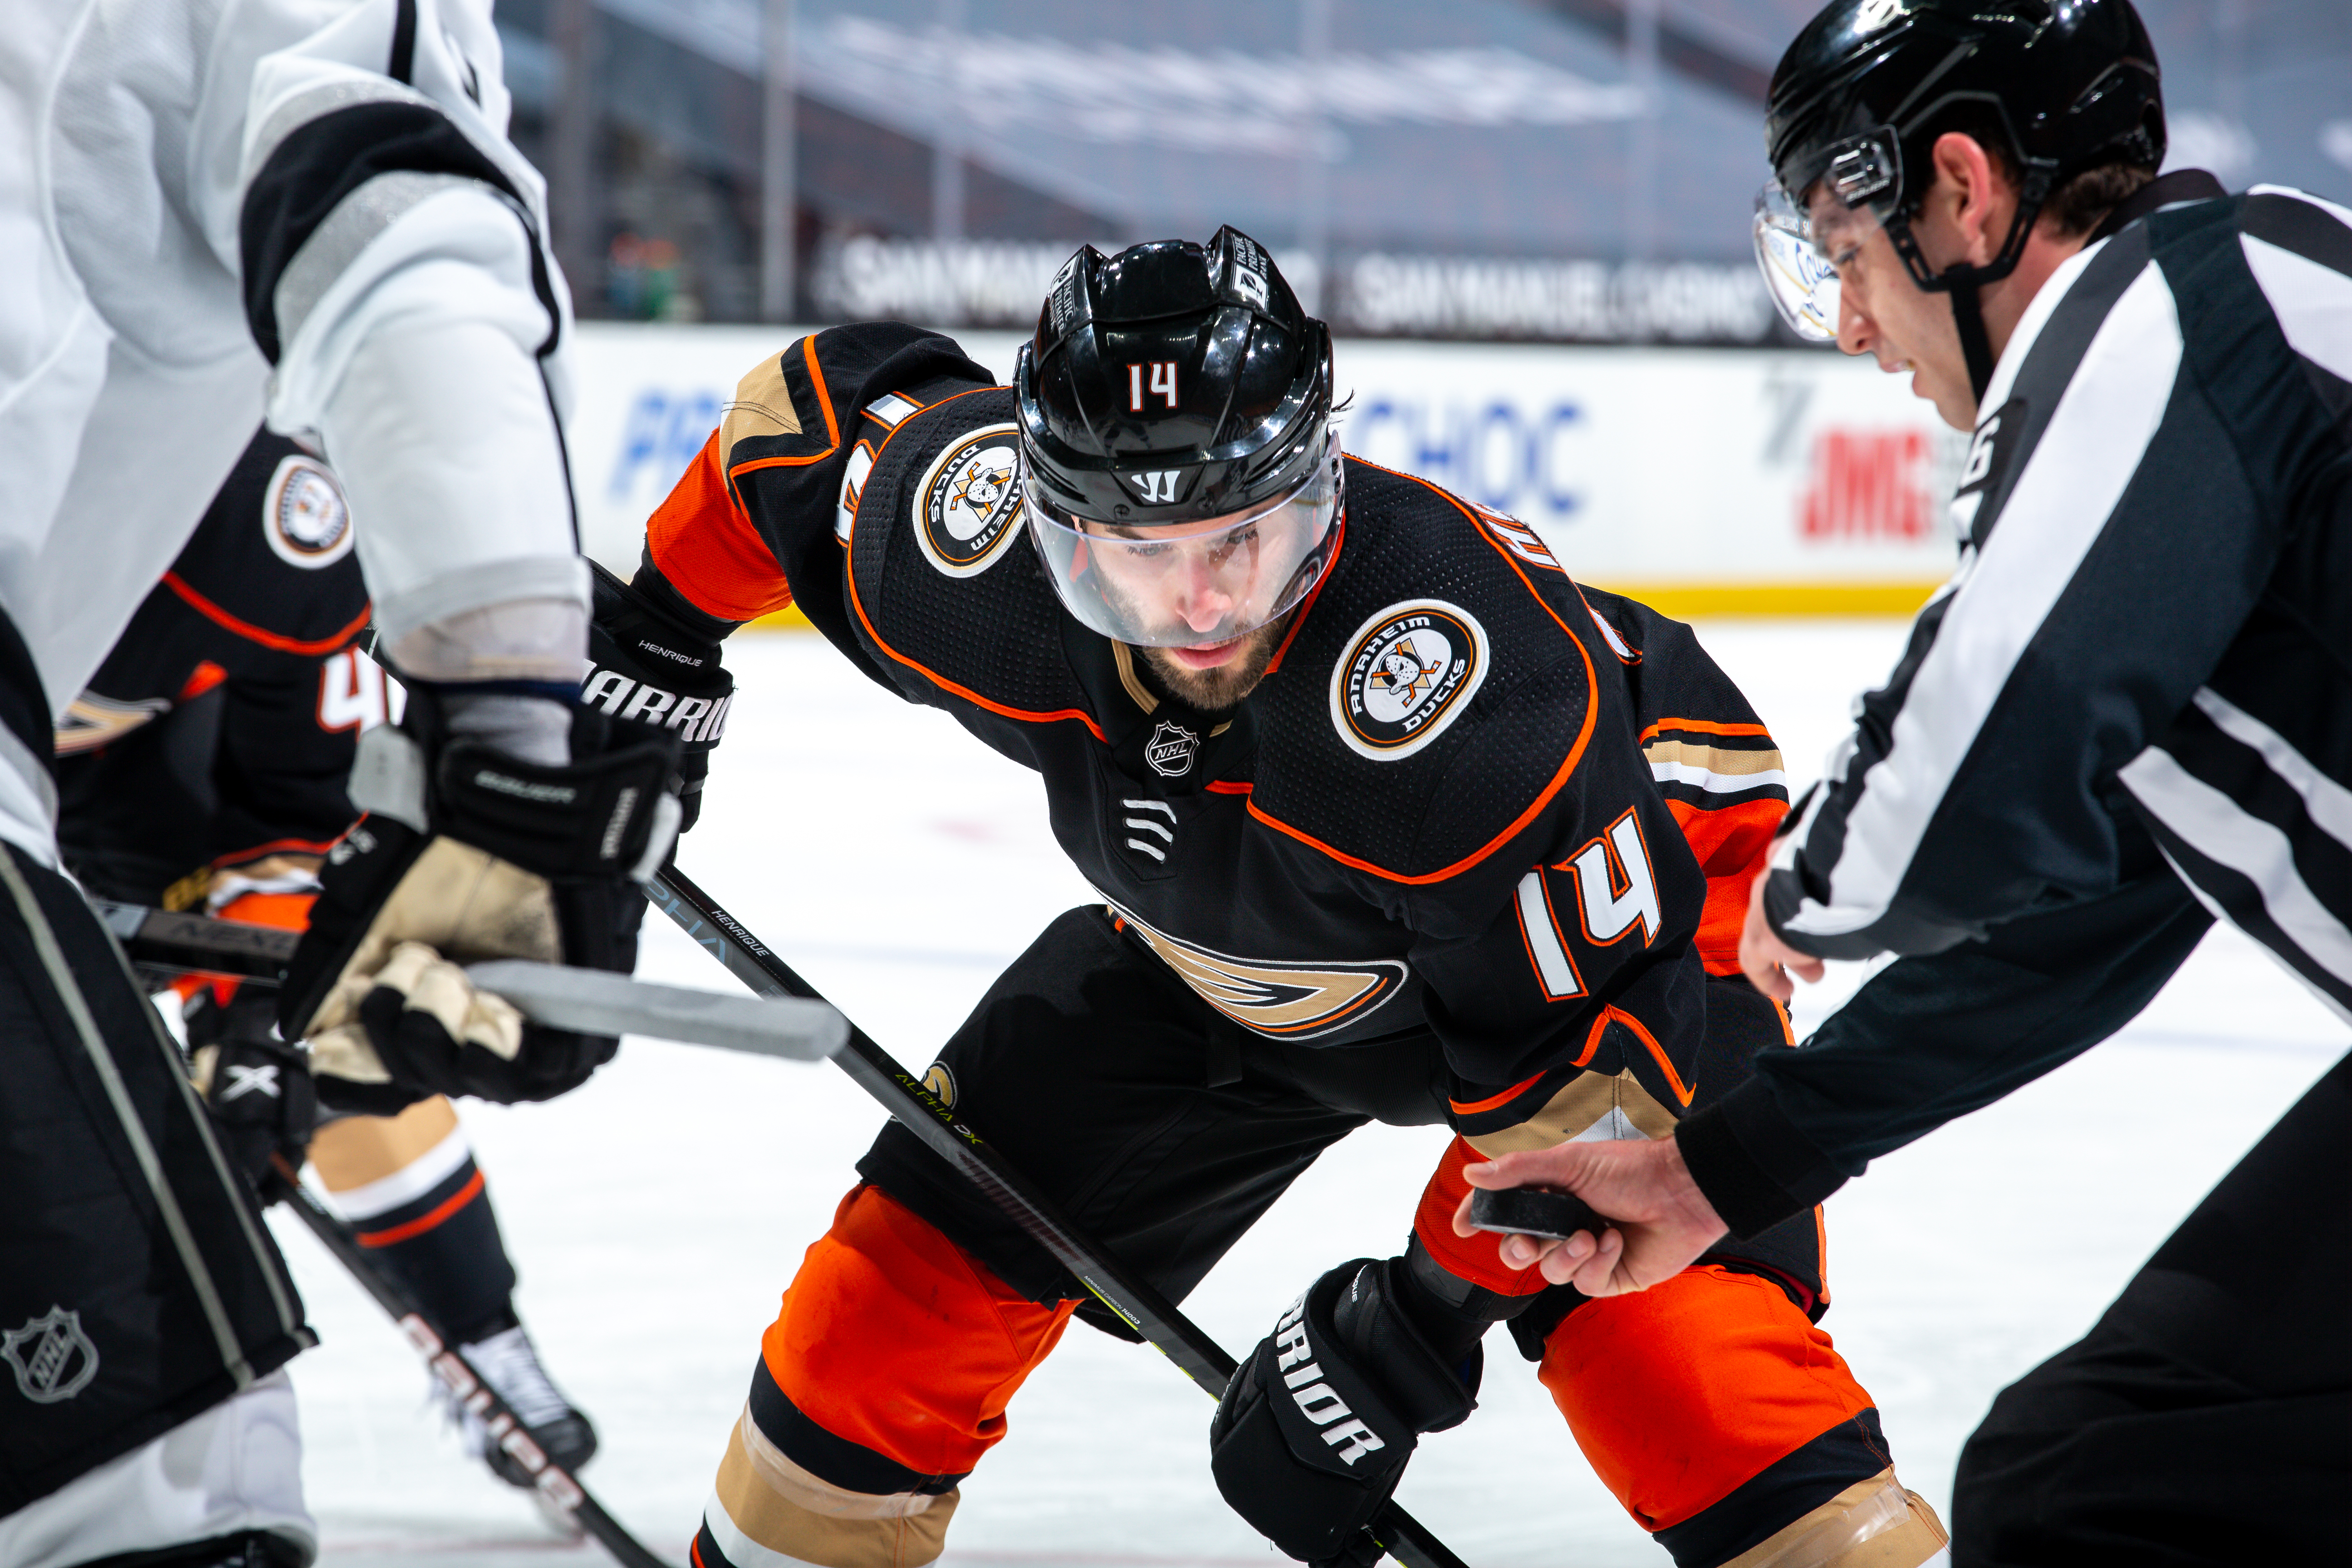 Adam Henrique #14 of the Anaheim Ducks waits for a face-off as linesman Jesse Marquis #86 prepares to drop the puck at Honda Center on March 10, 2021 in Anaheim, California.